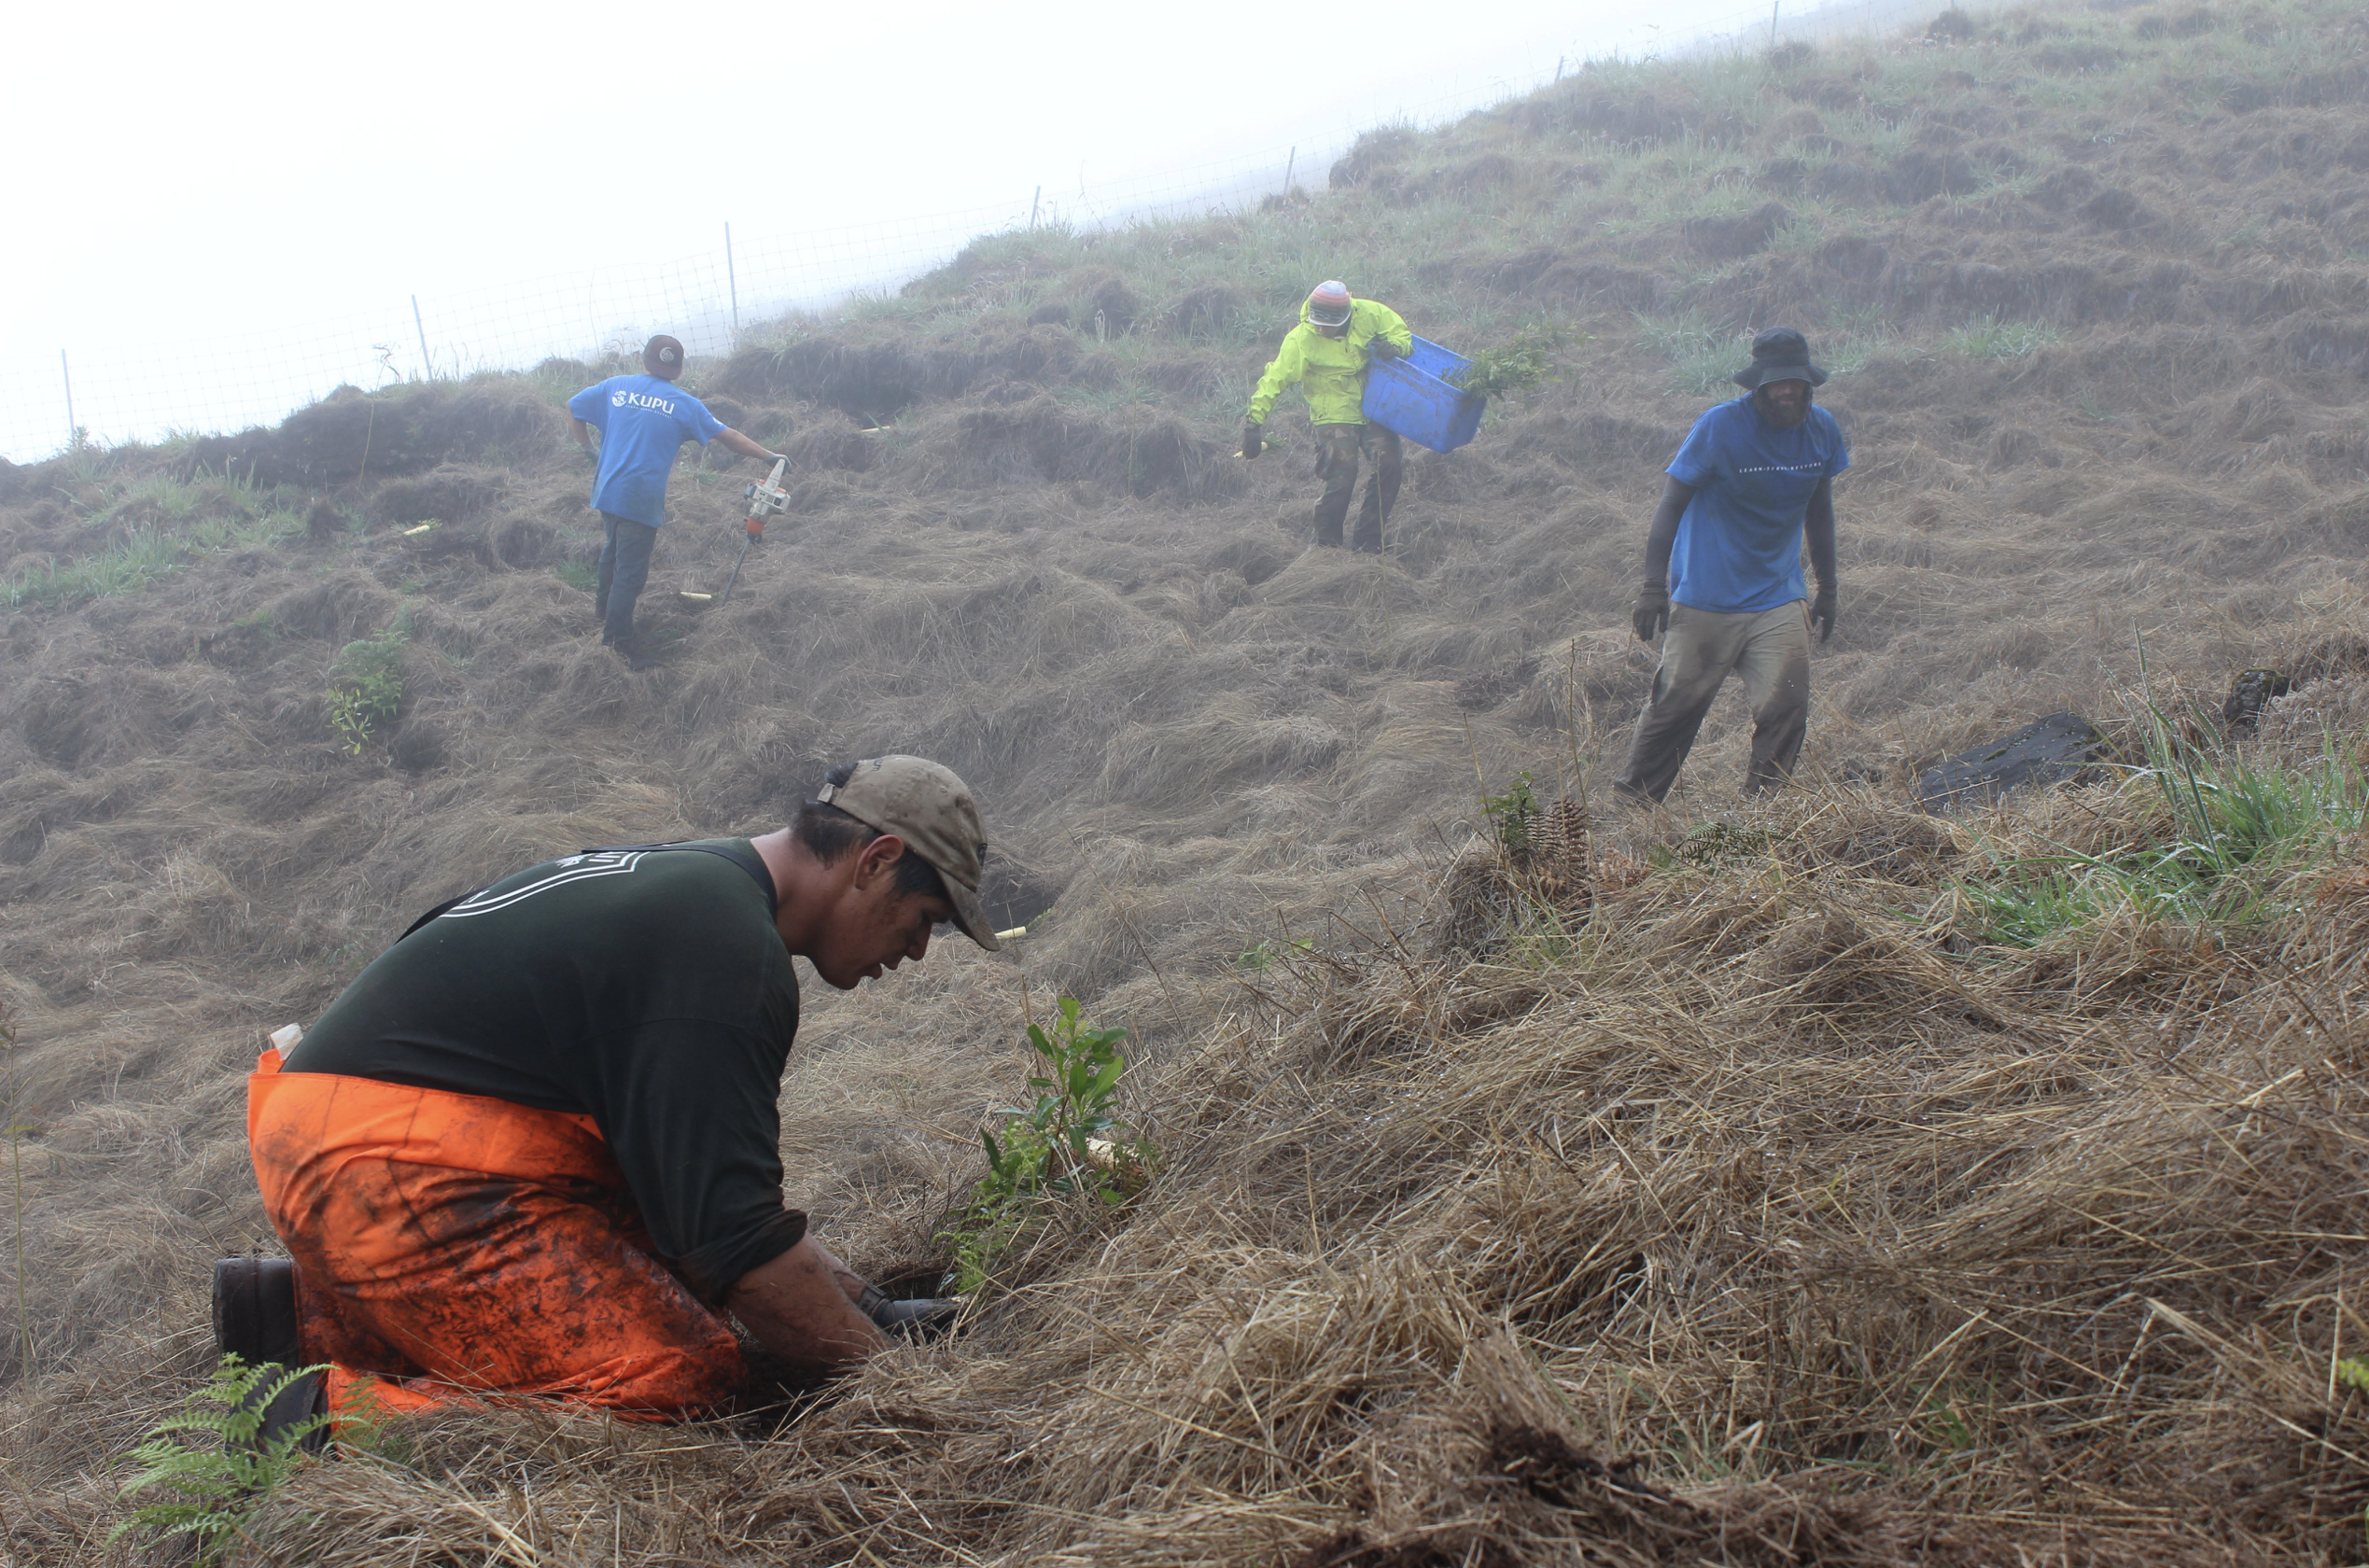 $5 M Earmarked for Hawai'i to Combat Climate Change, Restore Forests, Support Endangered Species